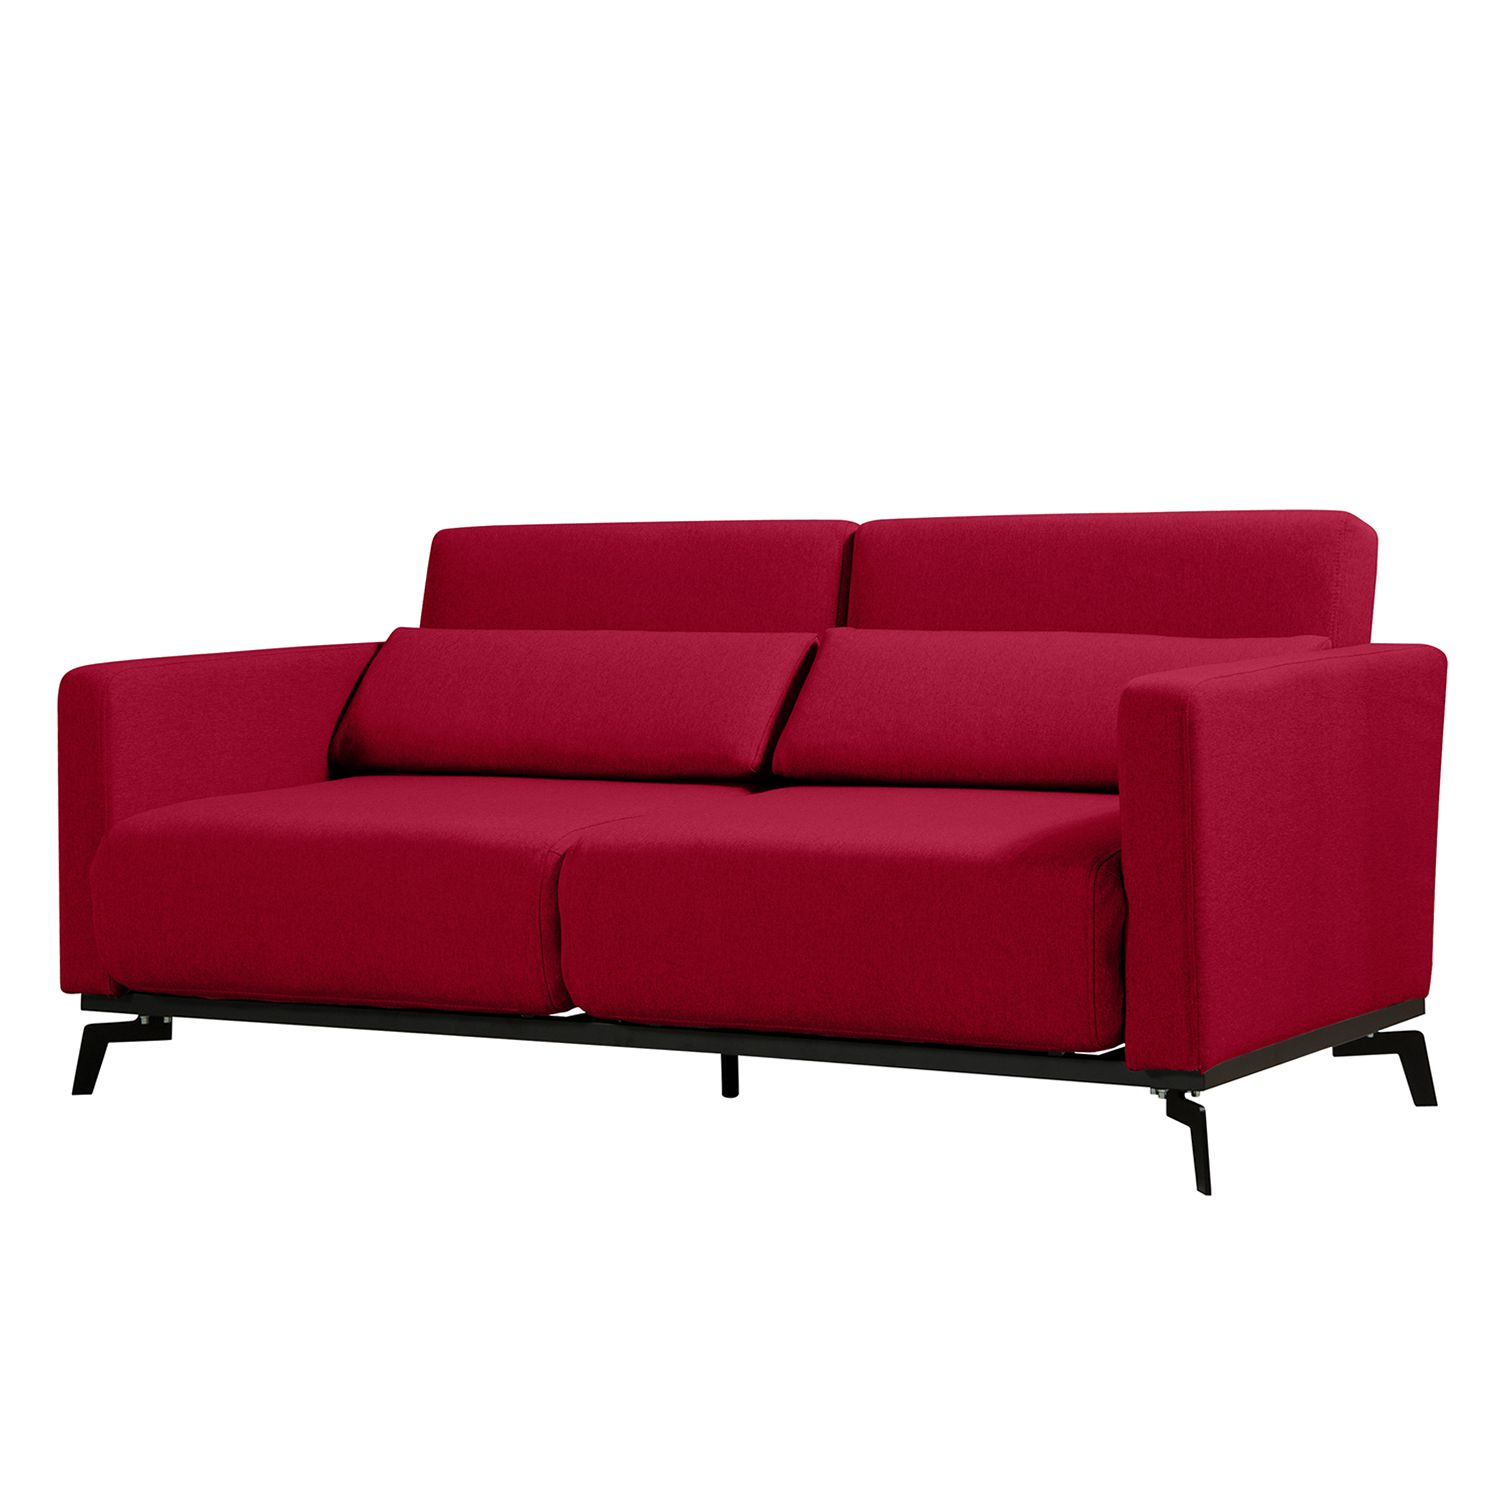 schlafsofa maven webstoff stoff zahira rot g nstig online kaufen. Black Bedroom Furniture Sets. Home Design Ideas